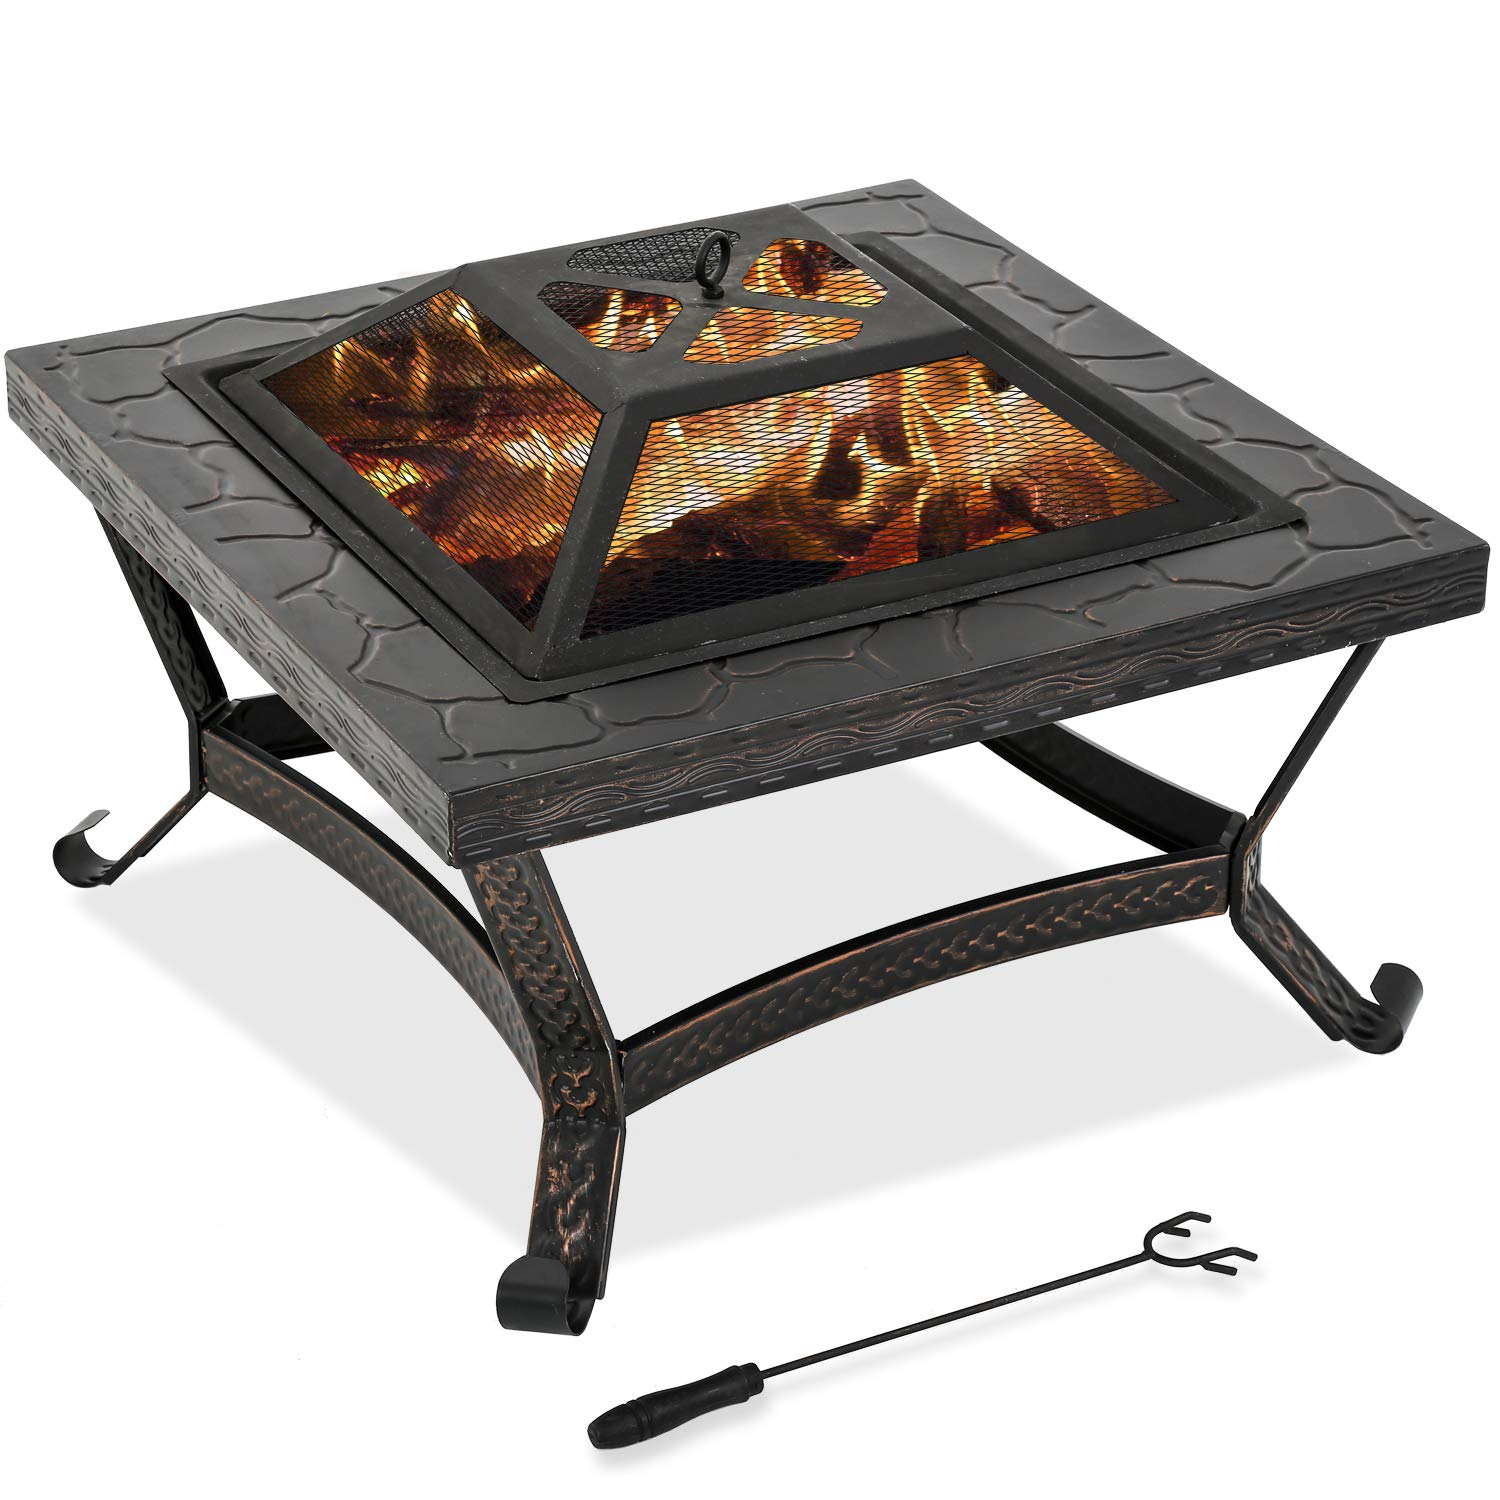 FDW Outdoor fire Pit for Wood 25 FirePit MetalFire Bowl Fireplace Backyard Patio Garden Stove with Charcoal Rack, Poker